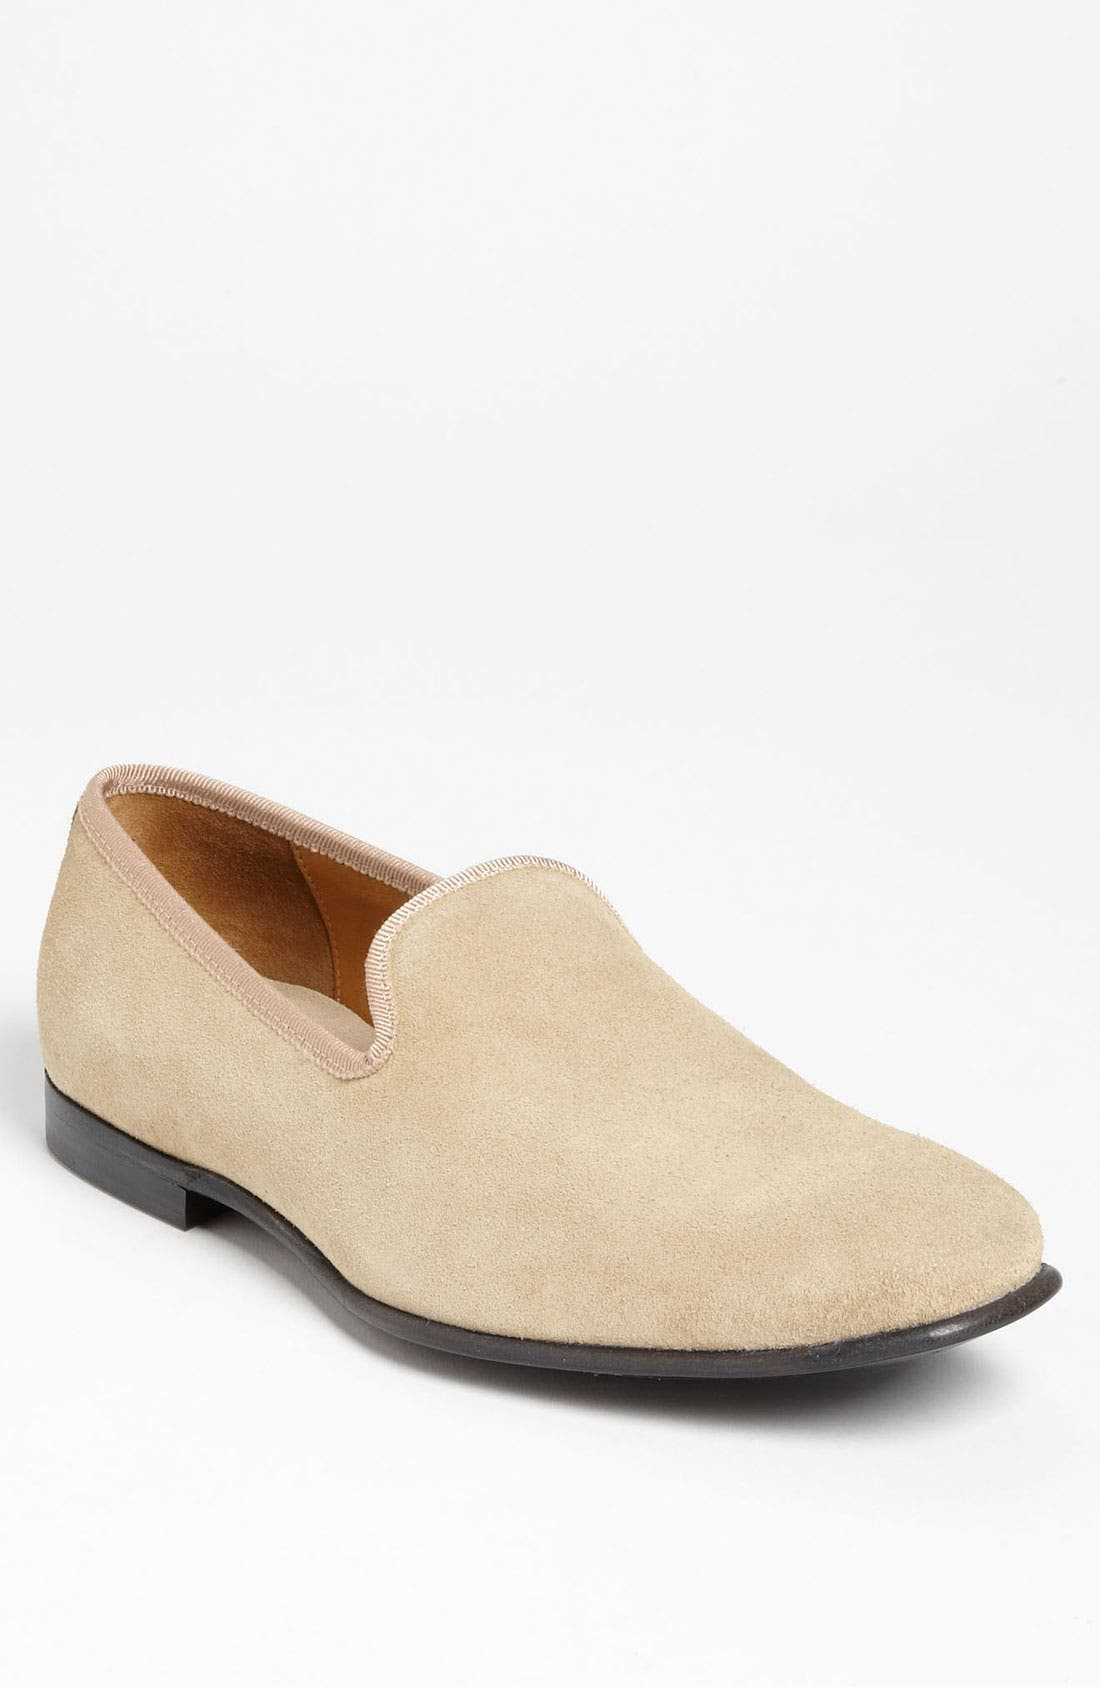 Main Image - McQ by Alexander McQueen Suede Loafer